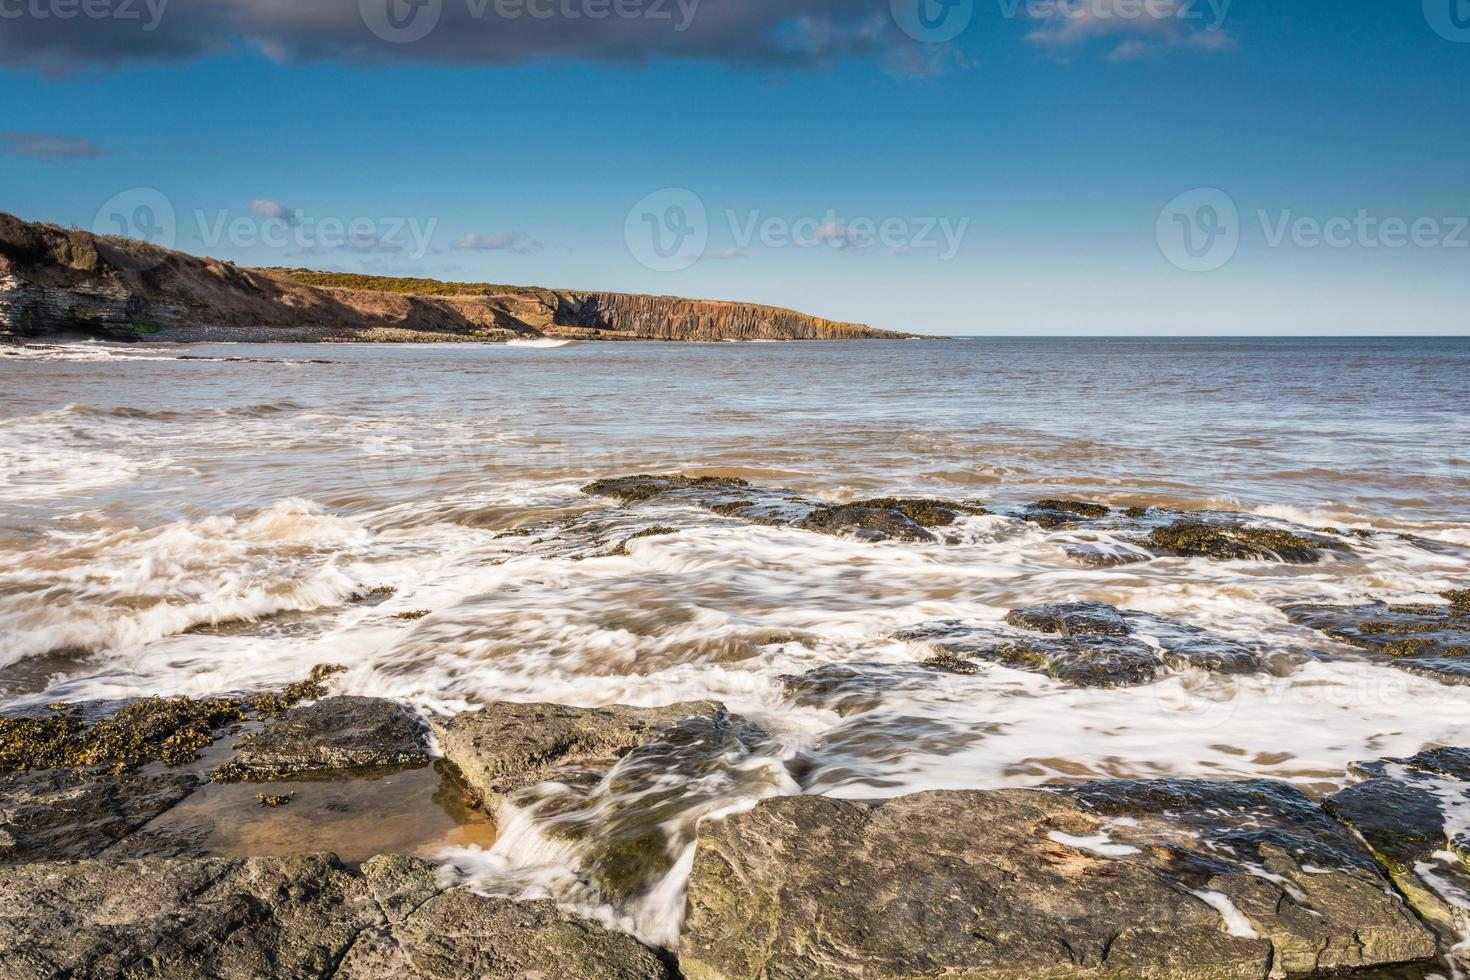 Incoming tide at Cullernose Point photo